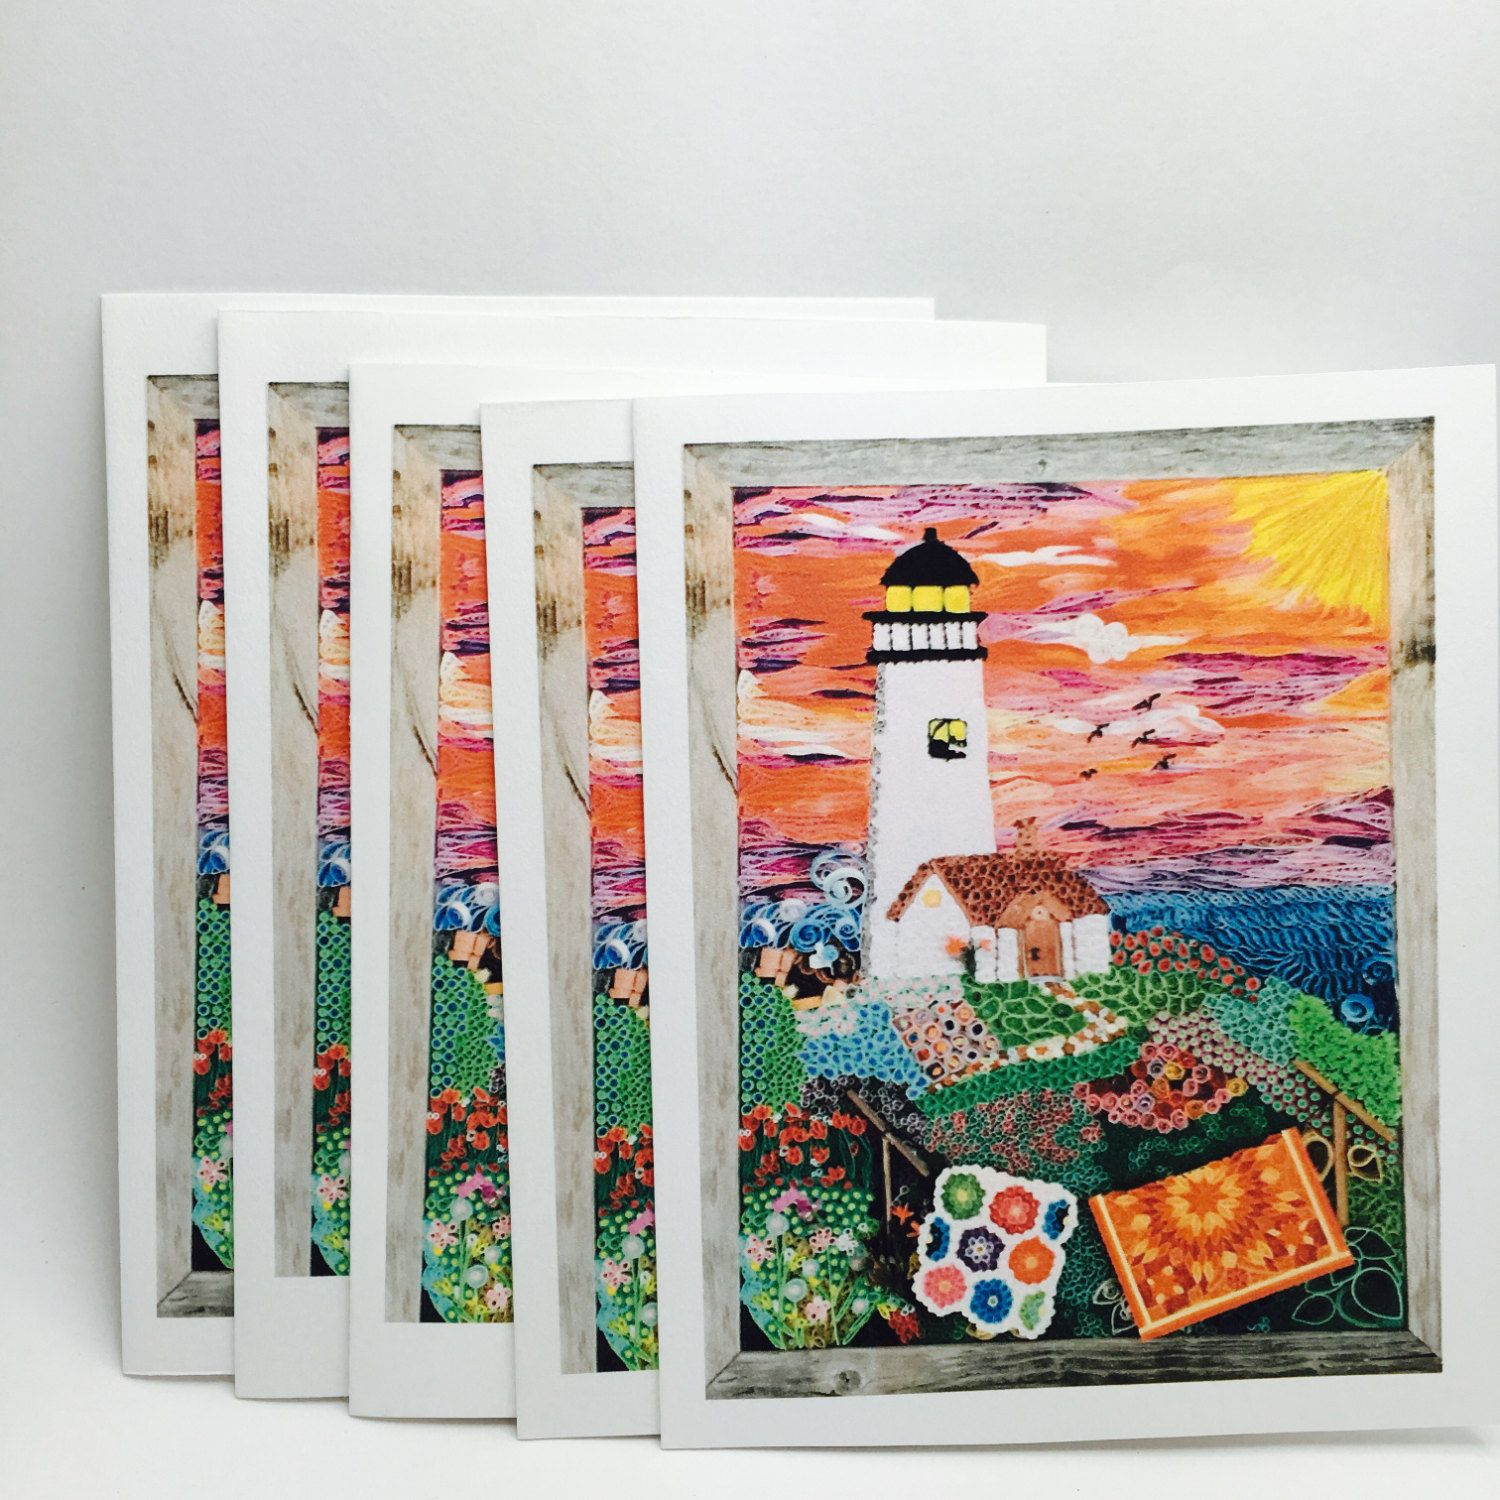 Cheap christmas gift ideas presents for dad presents for all great all occasion gift handmade all occasion paper quilled art photo greeting card lighthouse quilled art mosaic quilled art photo kristyandbryce Choice Image